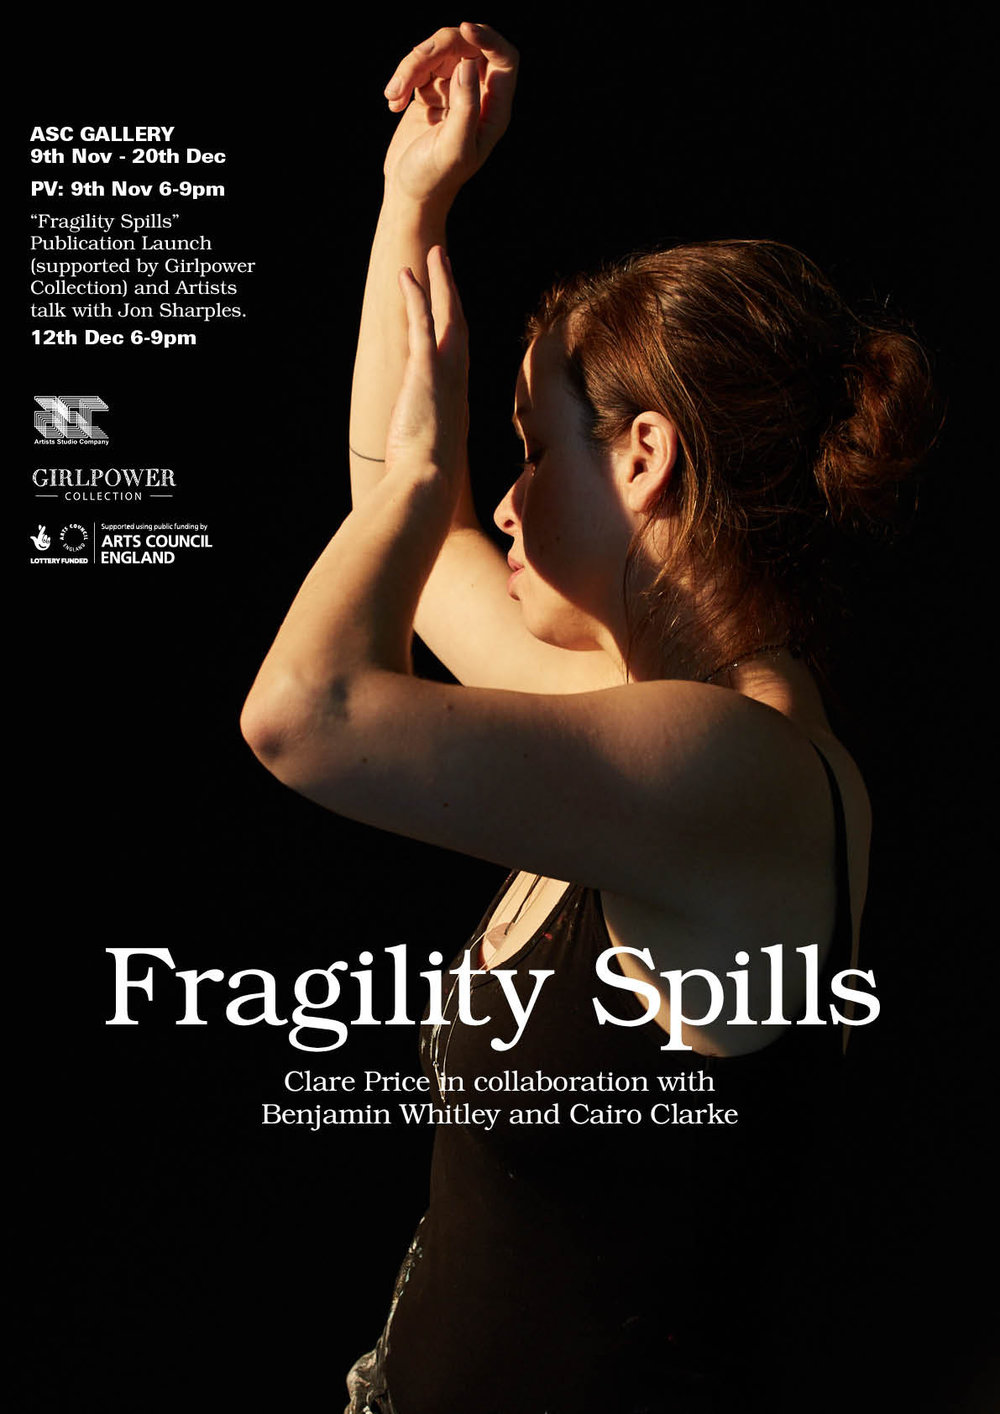 Fragility Spills Clare Price